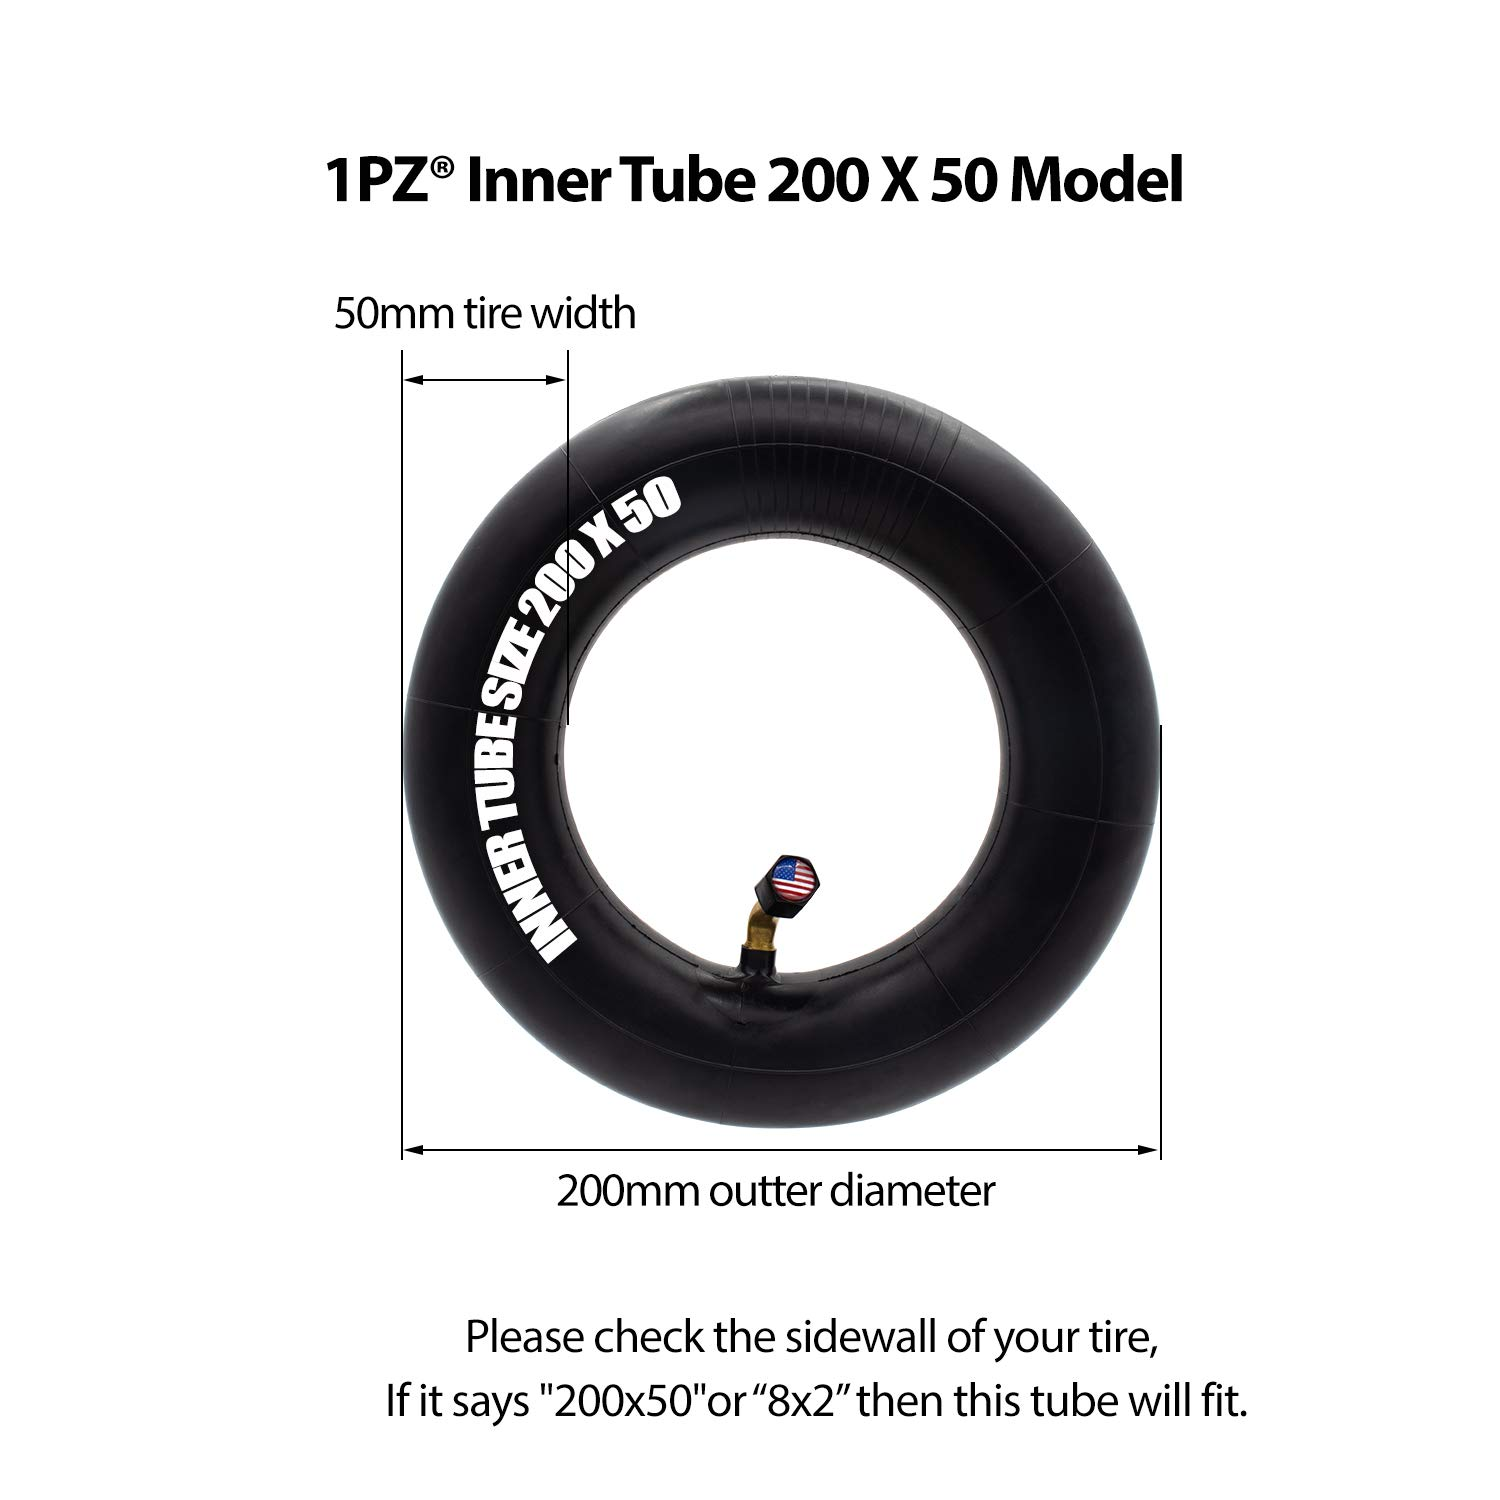 Pack of 2 ePunk and Dune Buggy e200 1PZ X02-20W 8 inch Heavy Duty Thorn Resistant Inner Tube // 200x50 Scooter Inner Tube Replacement for The Electric Razor e100